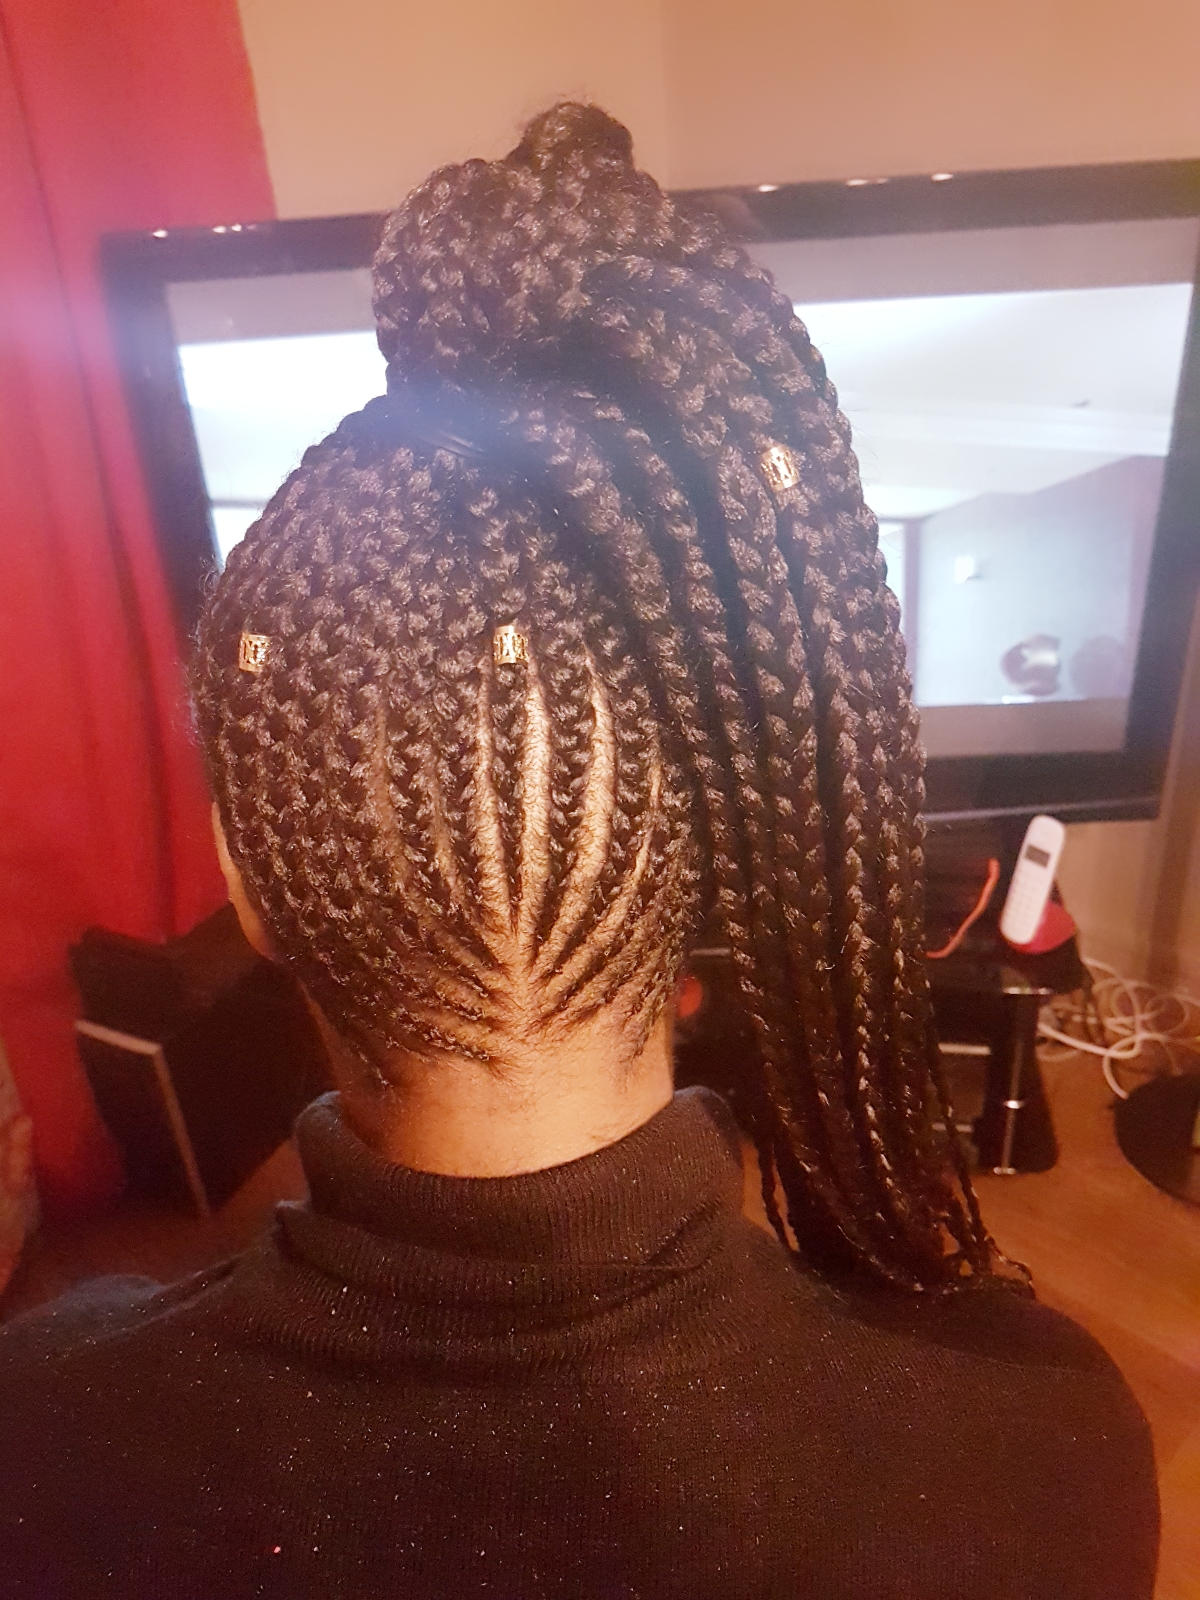 salon de coiffure afro tresse tresses box braids crochet braids vanilles tissages paris 75 77 78 91 92 93 94 95 MUXHKWIM